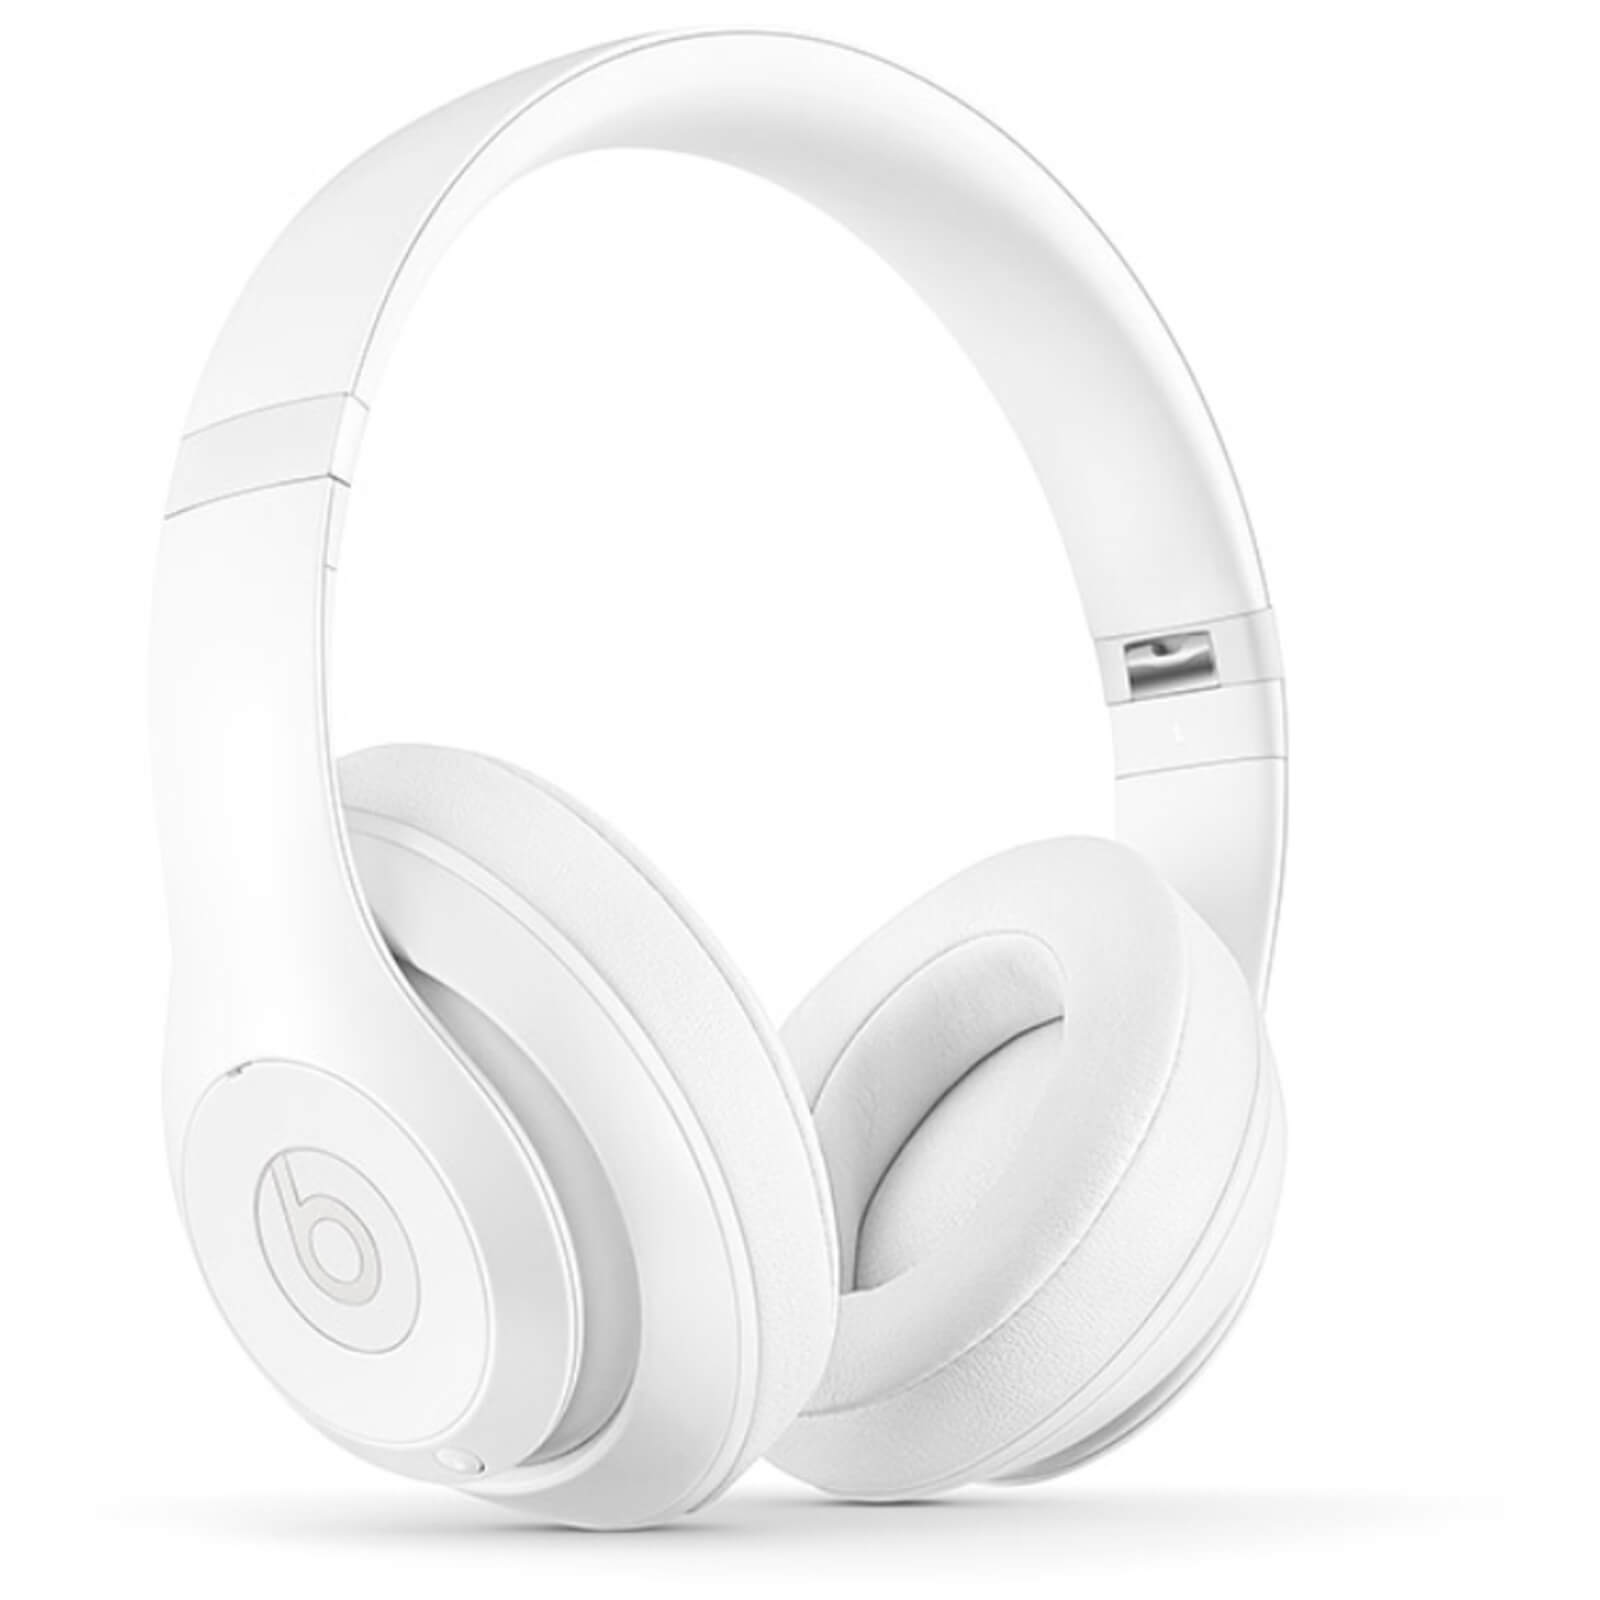 9b4f7d81616 Beats by Dr. Dre Studio 2 Wireless Noise Cancelling Headphones - White -  Snarkitecture | IWOOT